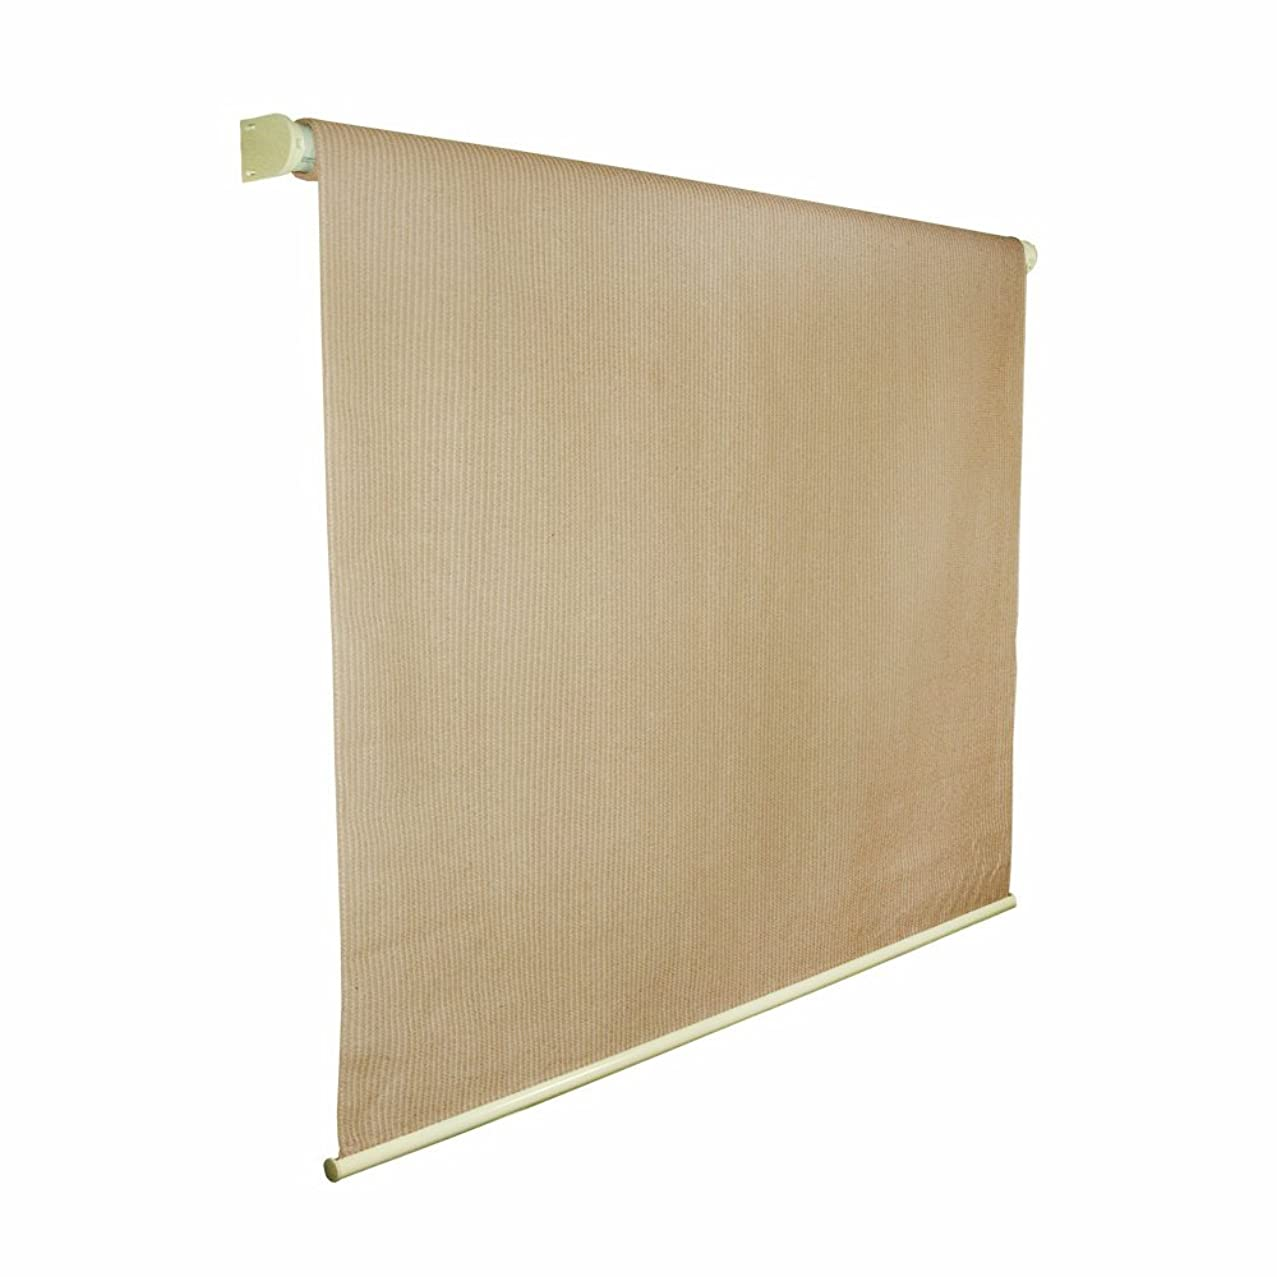 Coolaroo Exterior Roller Shade, Cordless Roller Shade with 80% UV Protection, No Valance, (8' W X 6' L), Almond